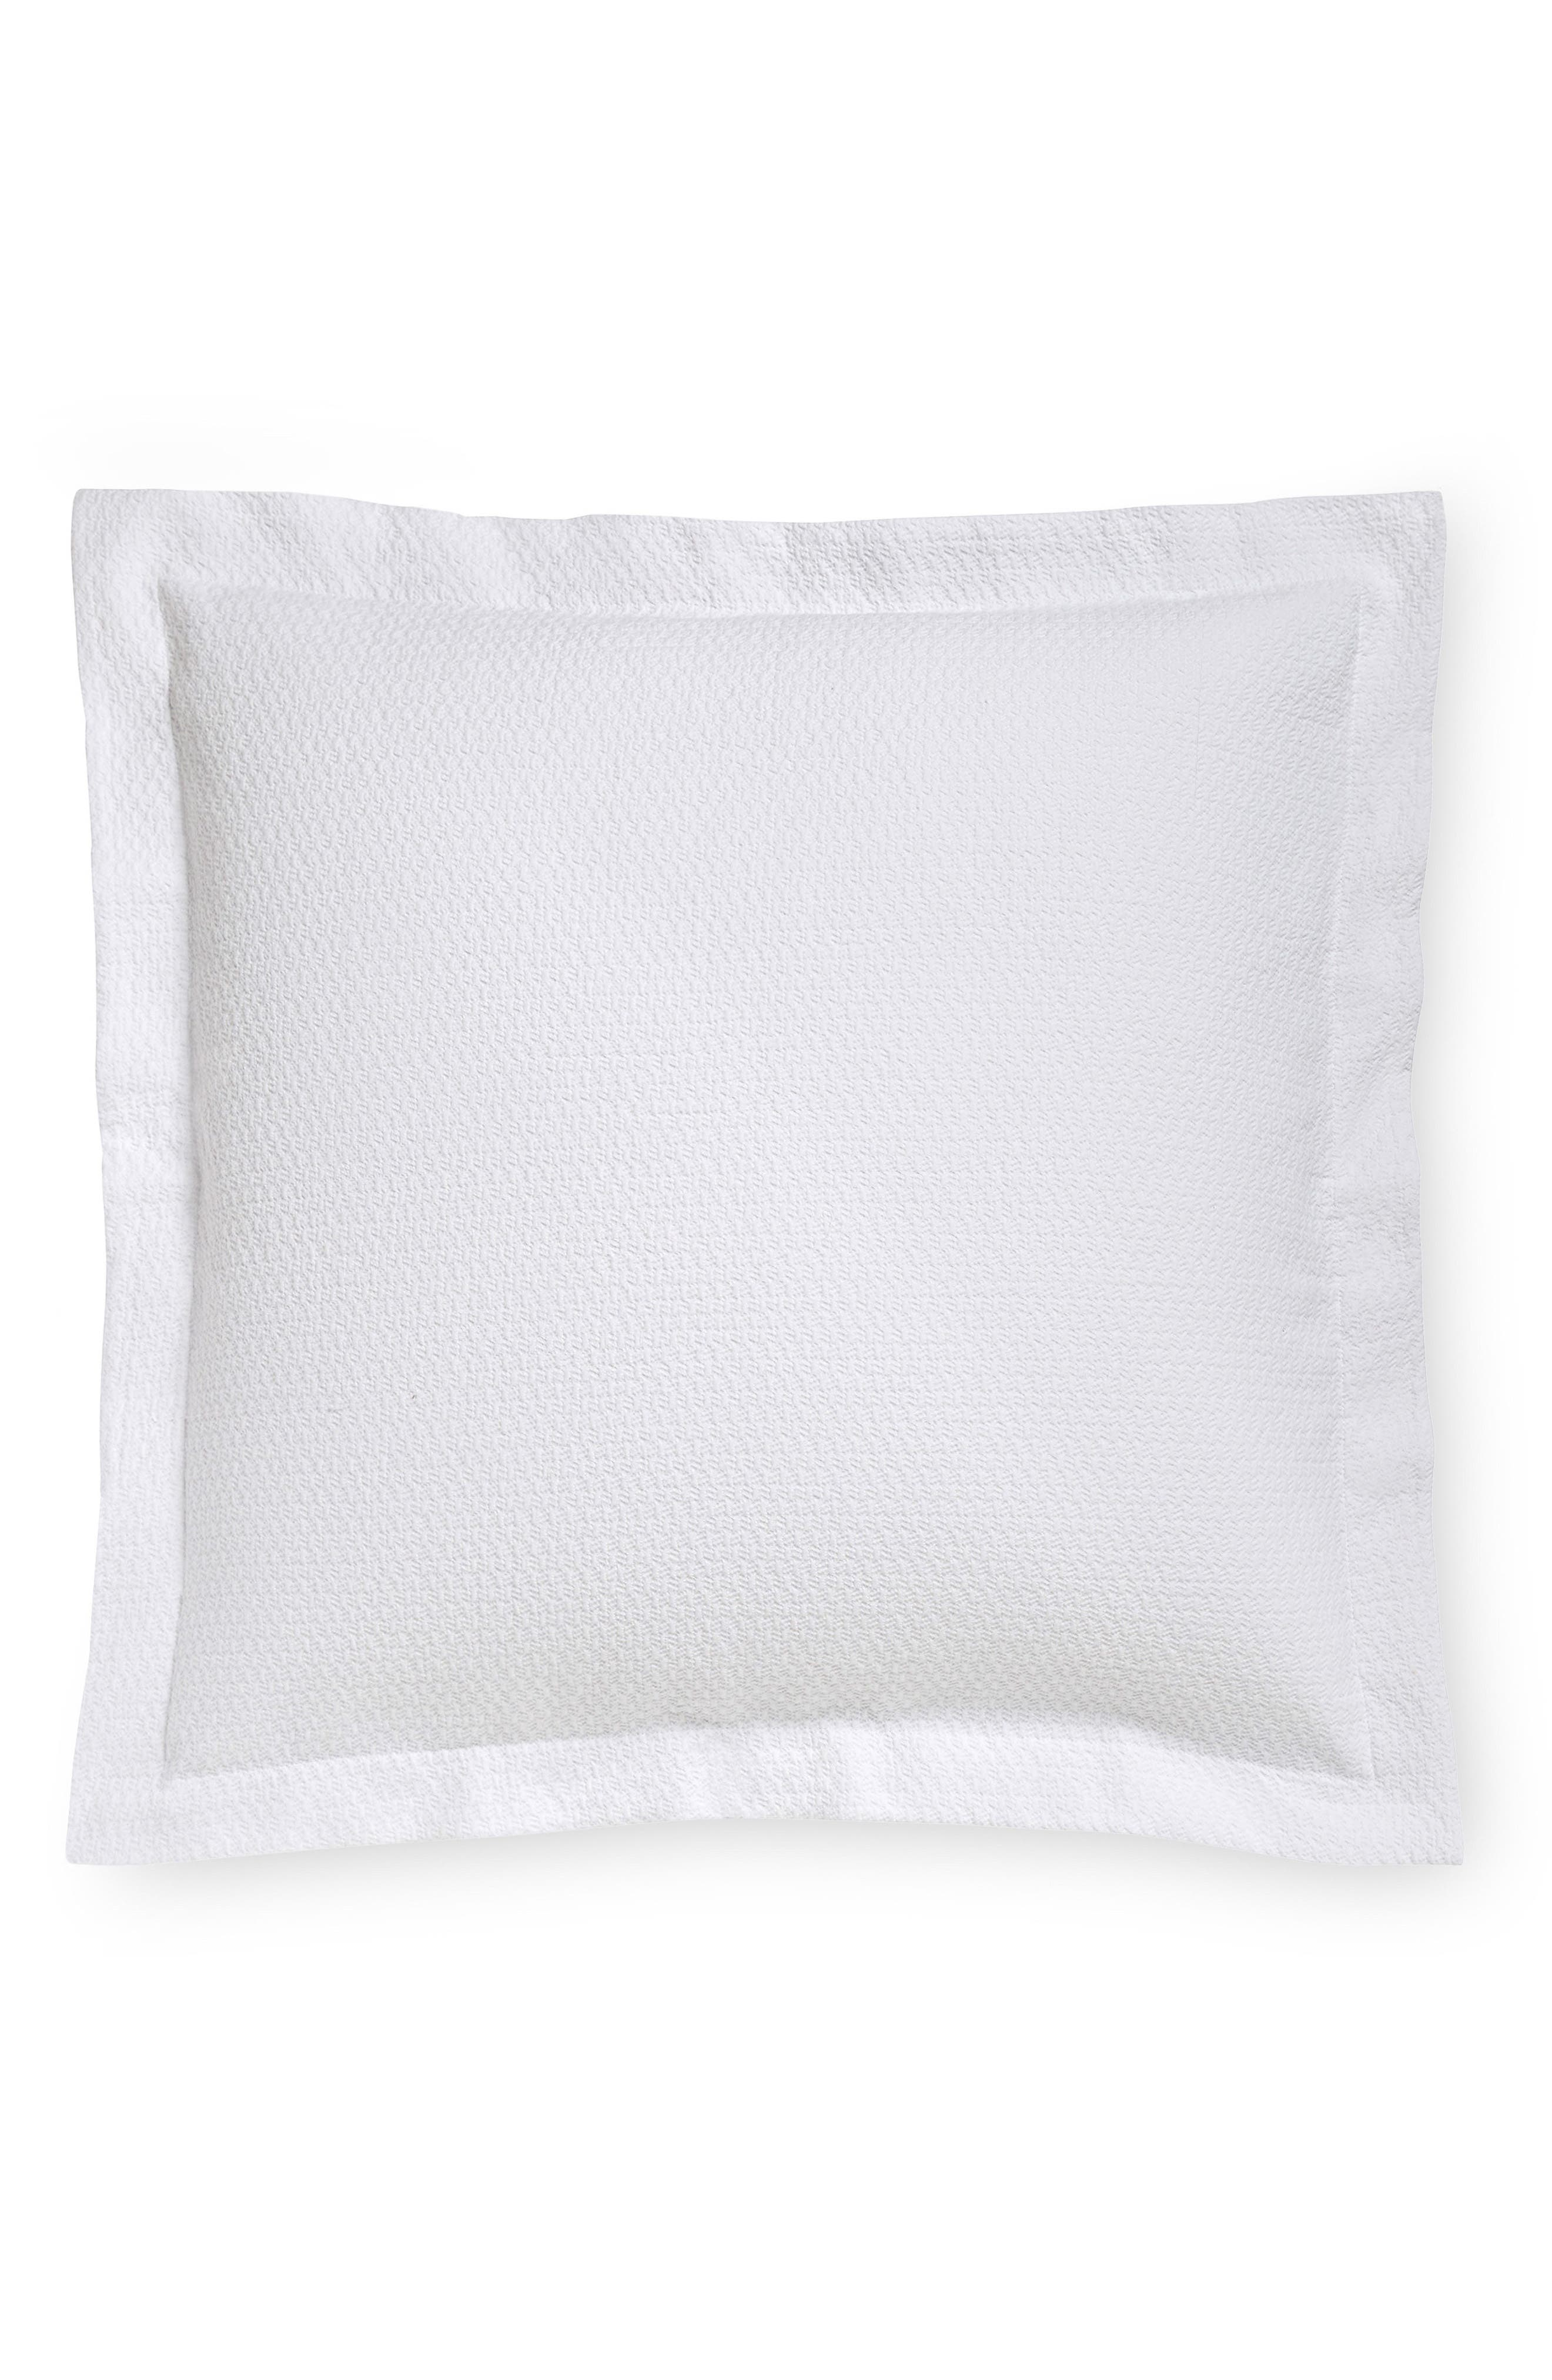 Merisso Euro Sham,                         Main,                         color, WHITE